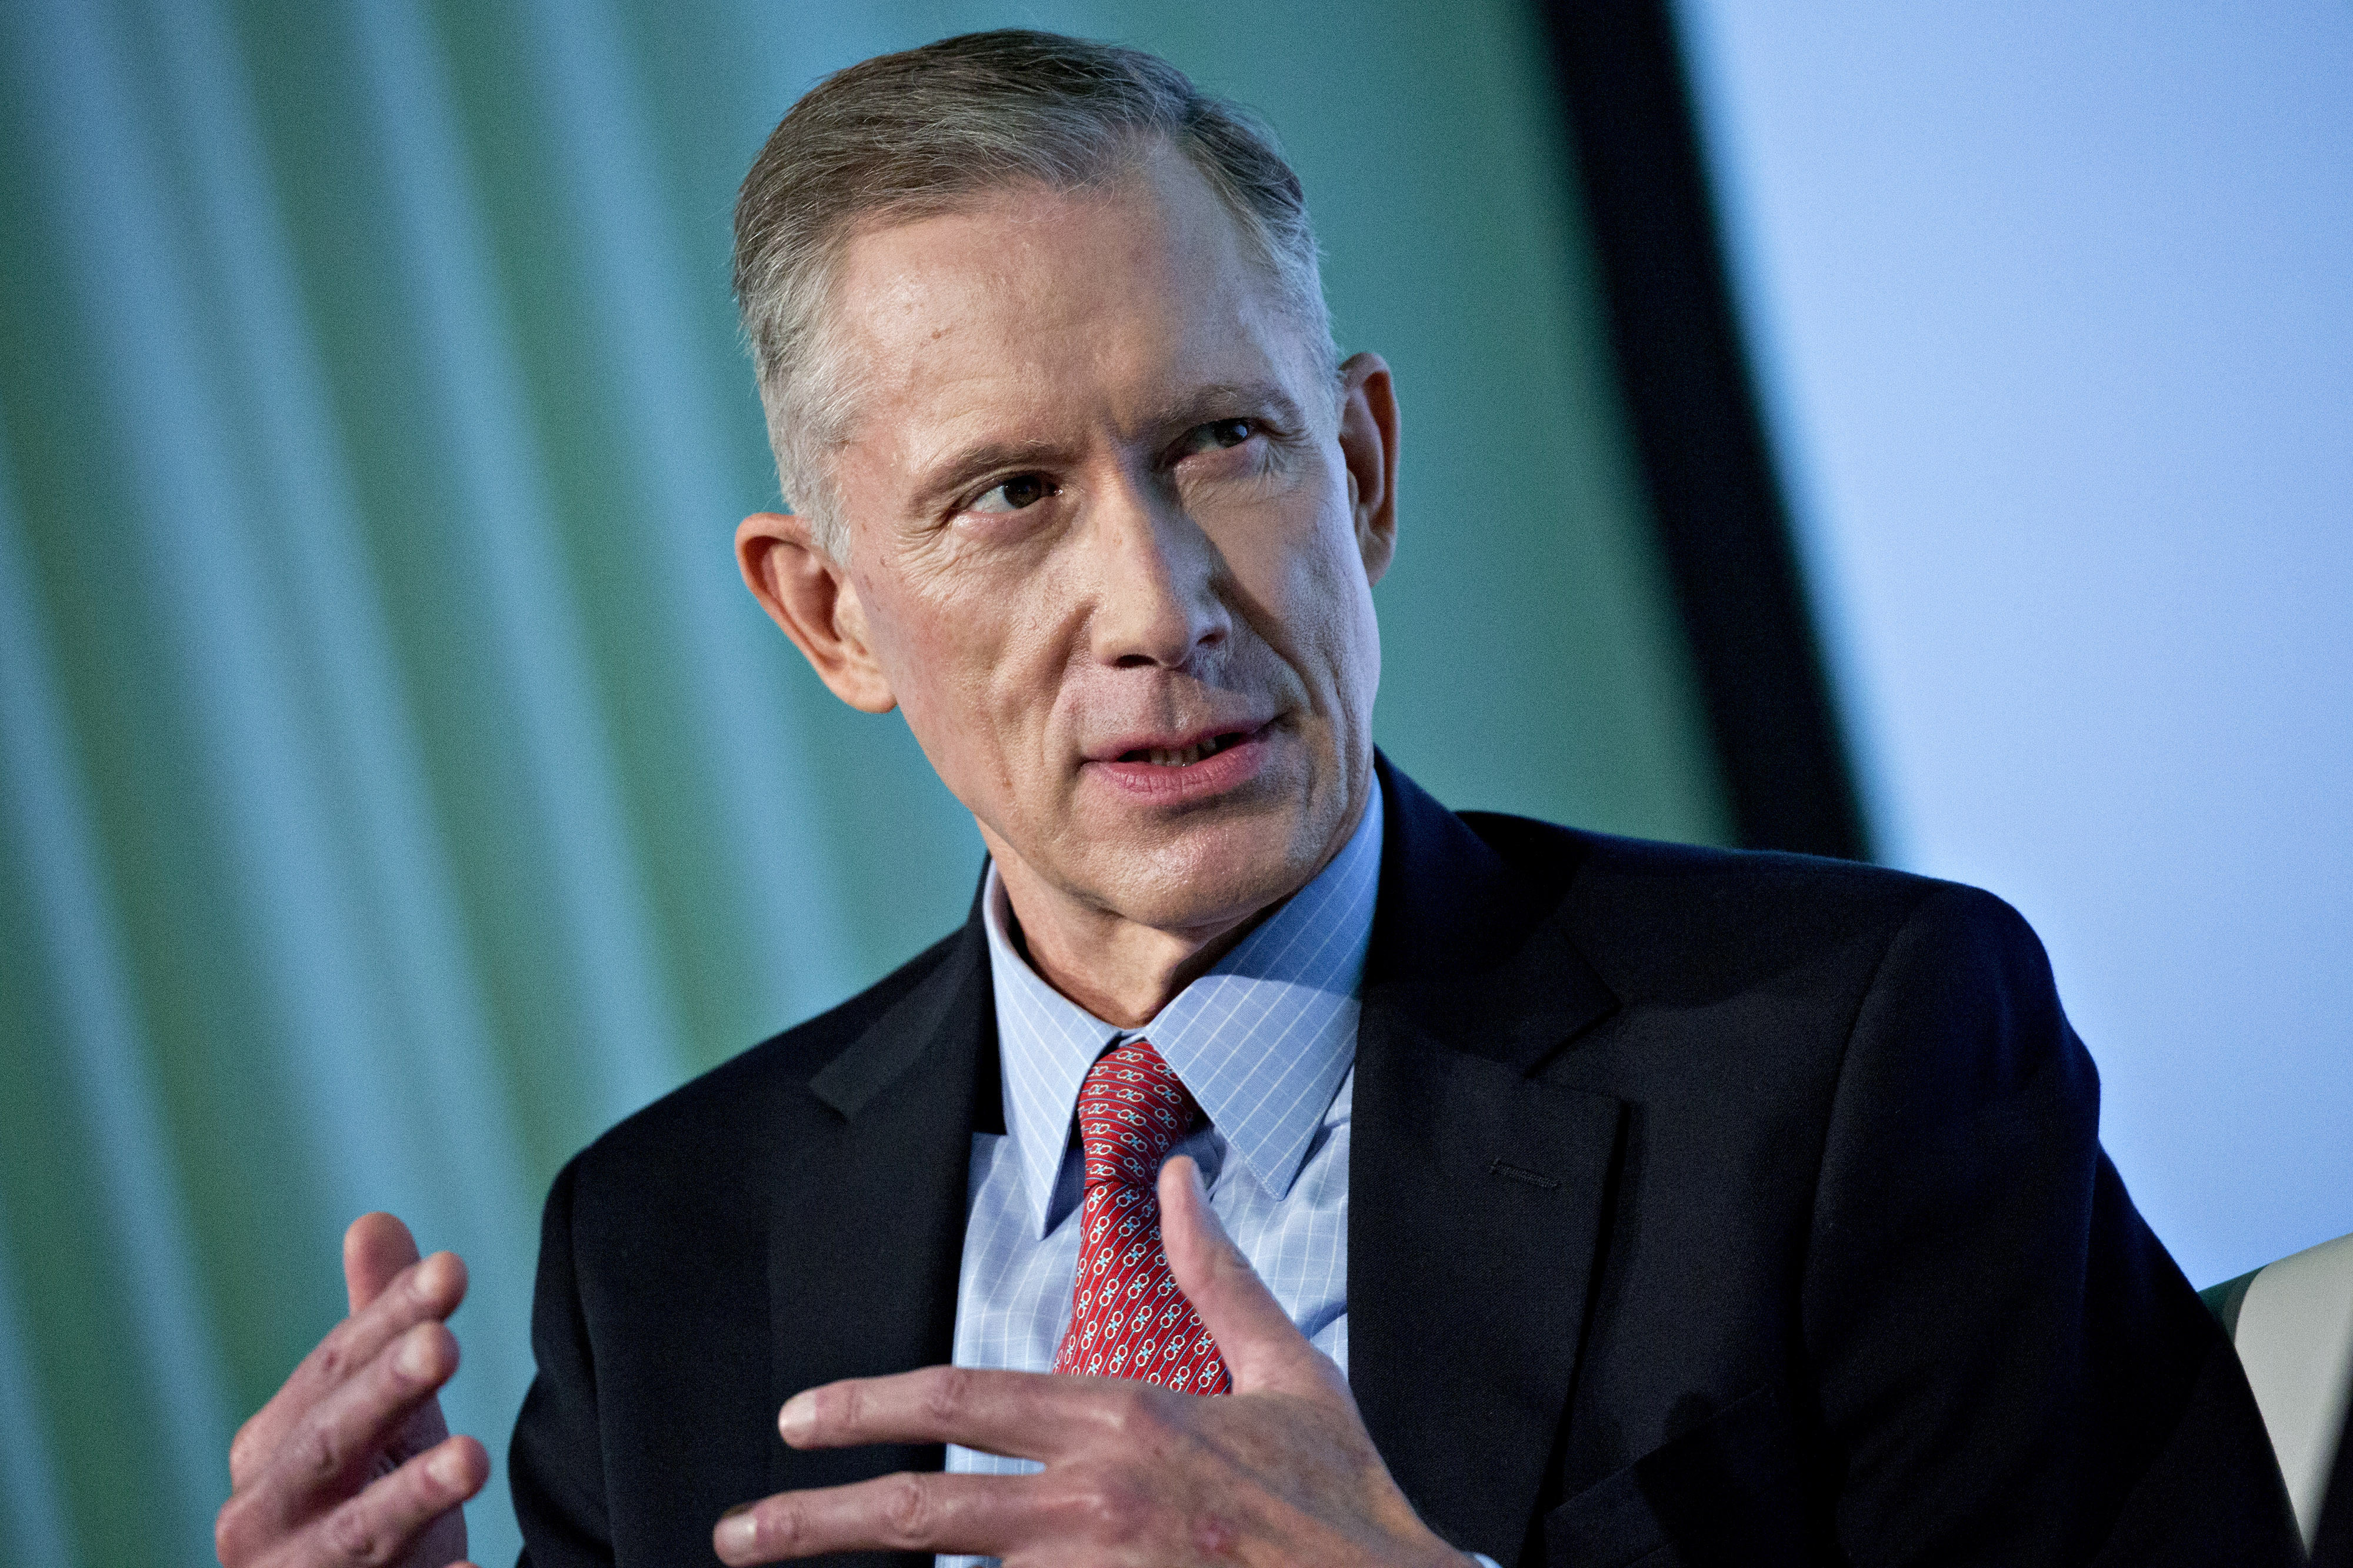 timothy-scheve-president-and-chief-executive-officer-of-janney-montgomery-scott-llc-speaks-during-an-interview-at-the-securities-industry-and-financial- ...